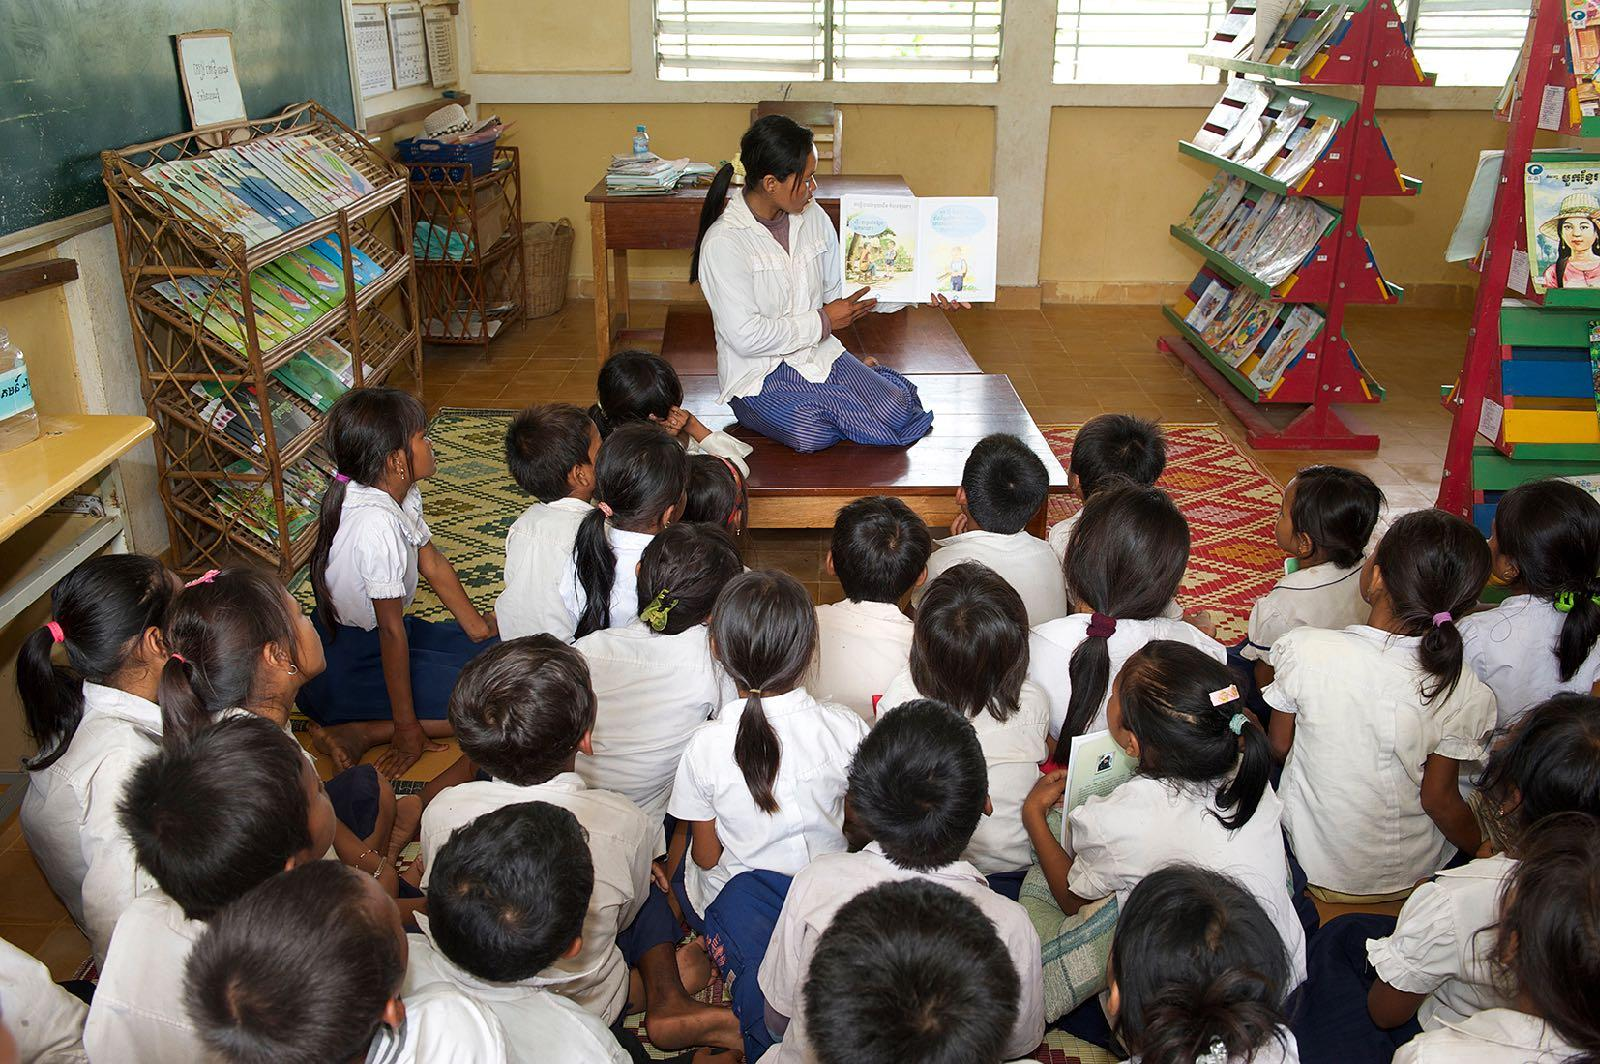 Children gather in library in floating village